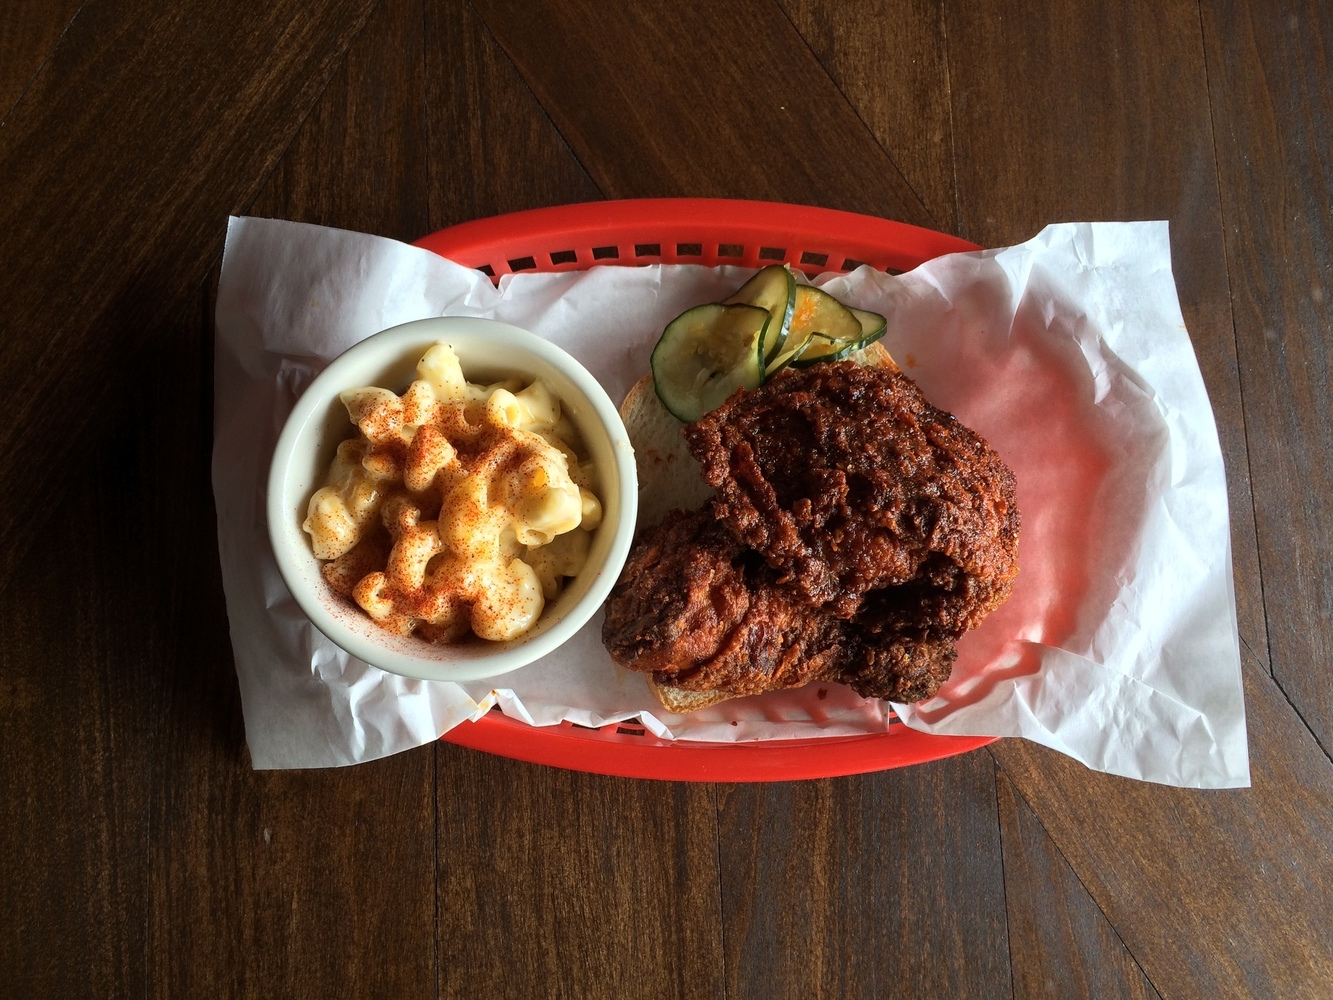 Seattle's Mega Popular Nashville Hot Chicken Restaurant Plans to Open Two New Locations